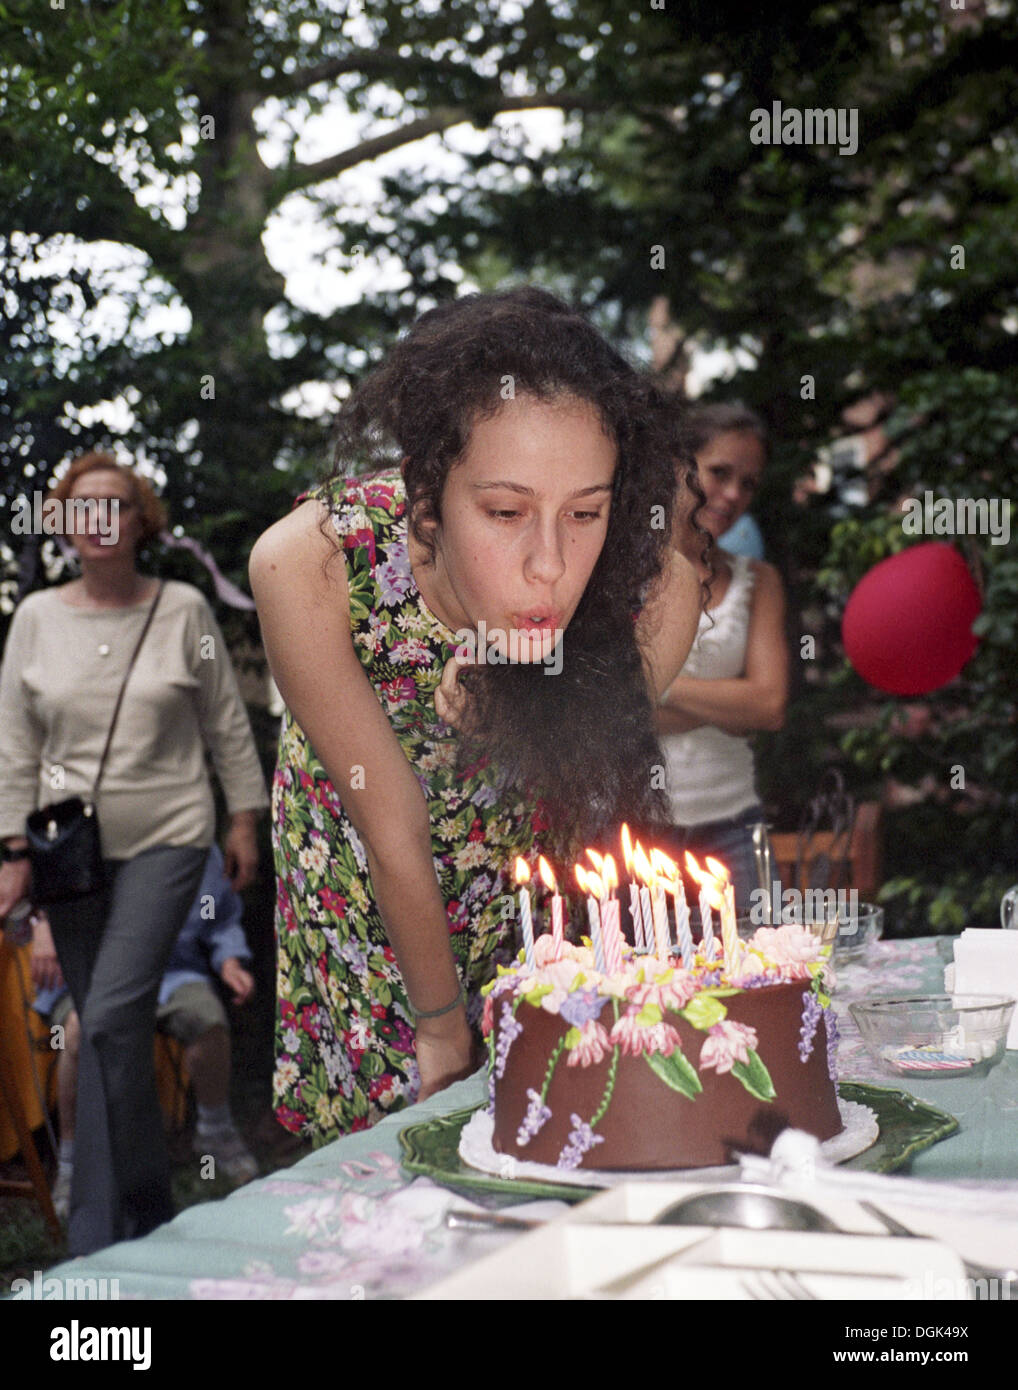 Young Lady Making A Wish And Blowing Out The Candles On Her 18th Birthday Cake MR